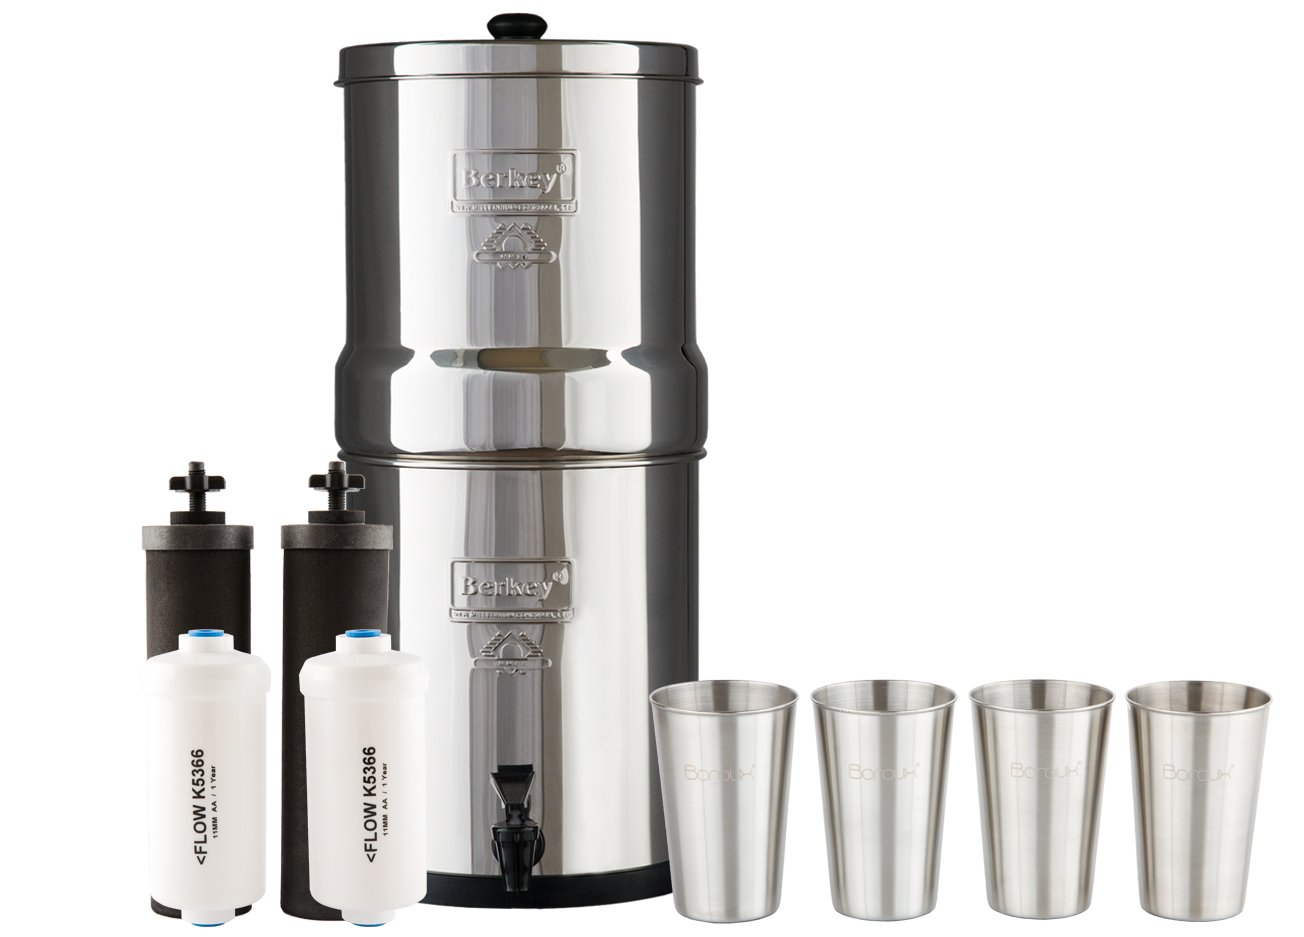 Big Berkey Water Filter System w/ 2 Black Purifier Filters (2 Gallons) Bundled w/ 1-set of Fluoride Filters (PF2) and 1-set of 4 Boroux 12 oz Stainless Steel Cups for drinking the best tasting water